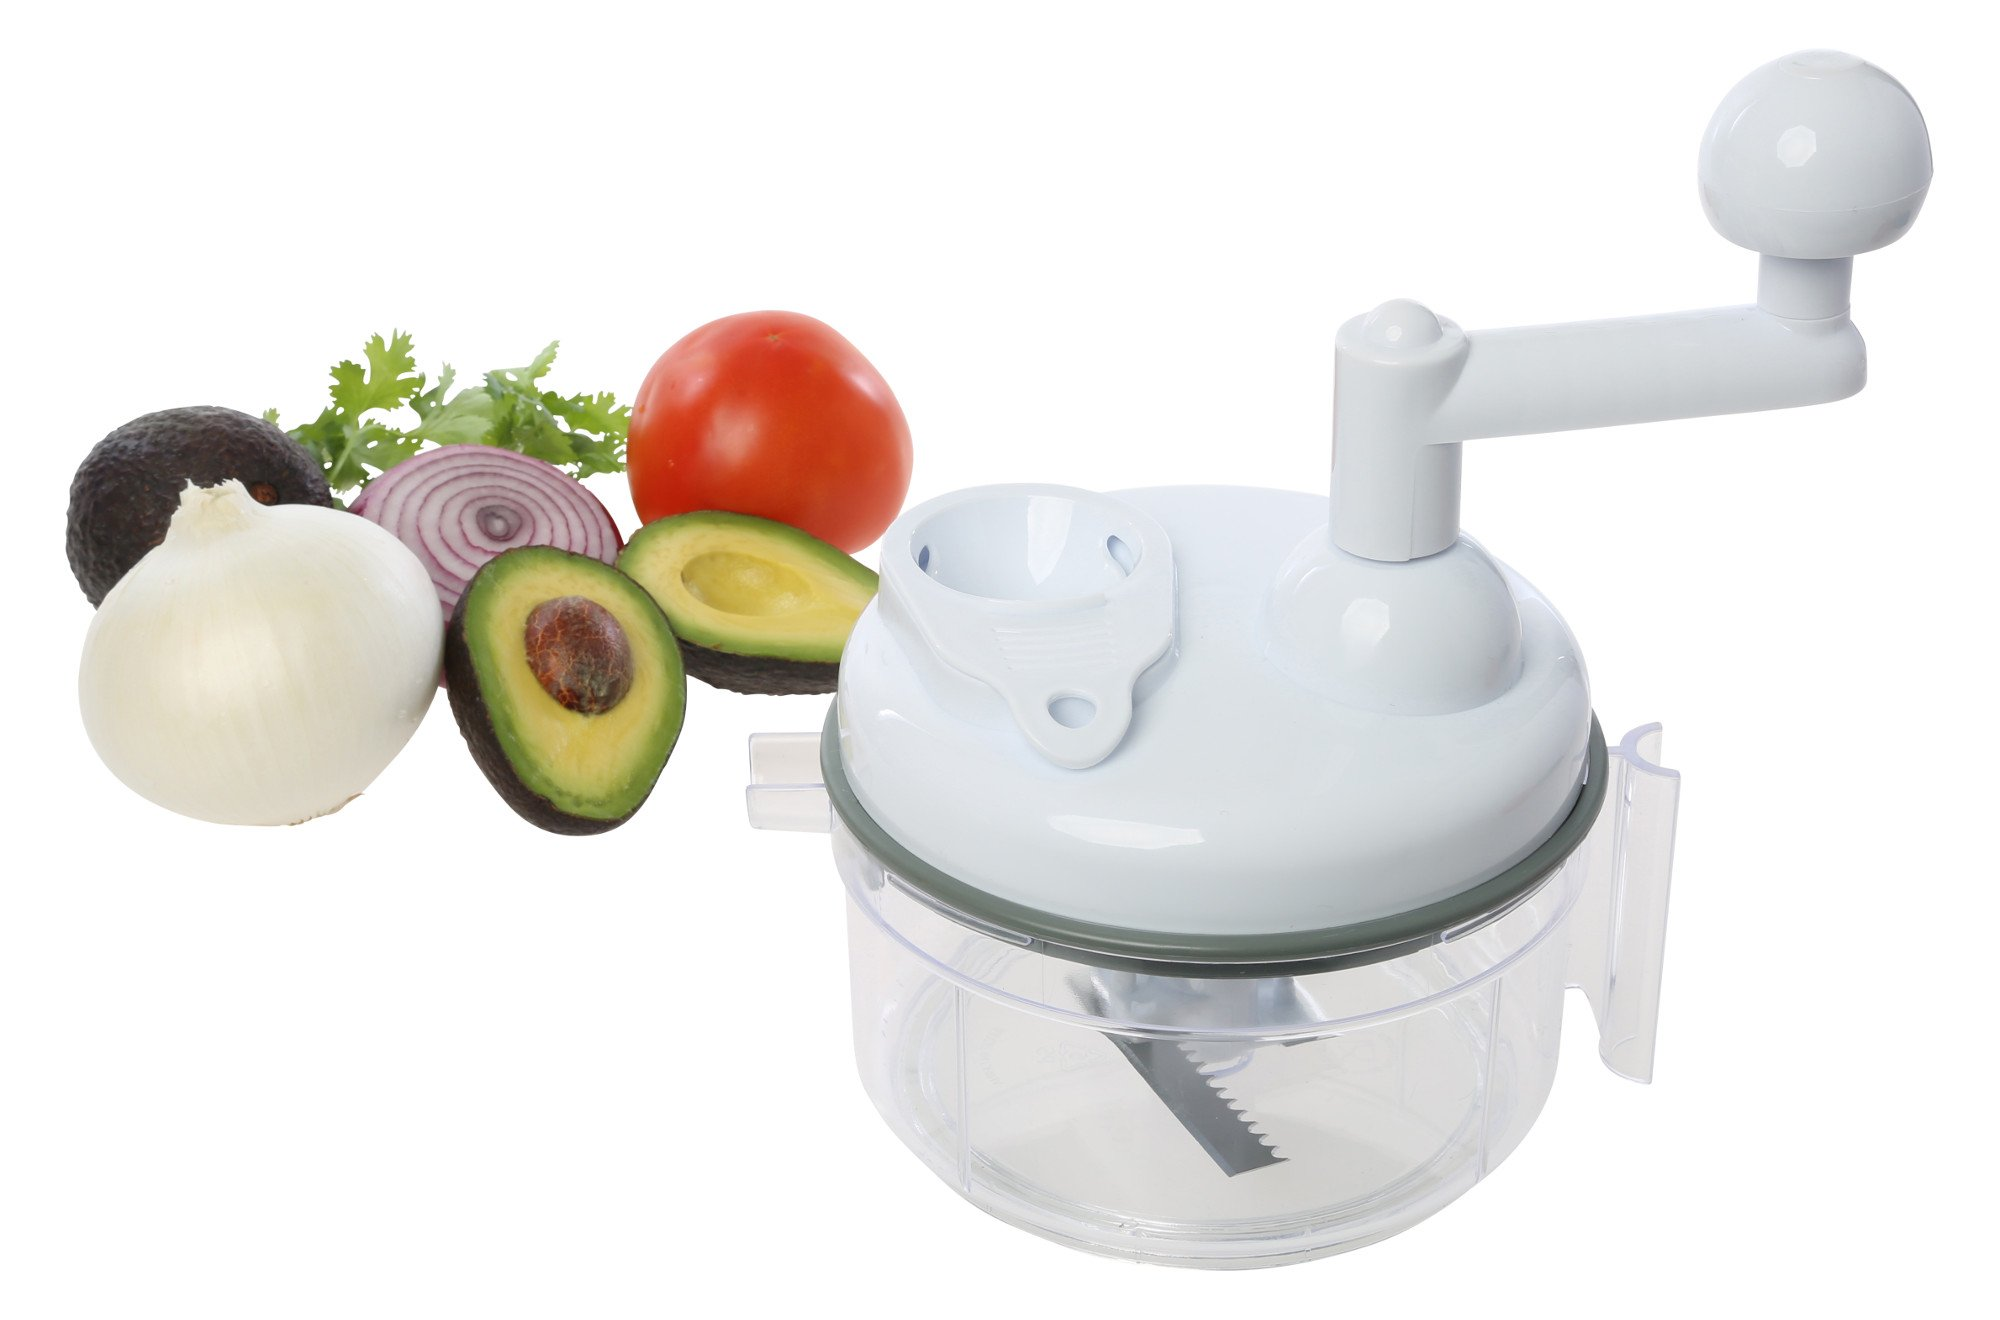 Salsa Master Salsa Maker, Food Chopper, Mixer and Blender - As Seen On TV Manual Food Processor